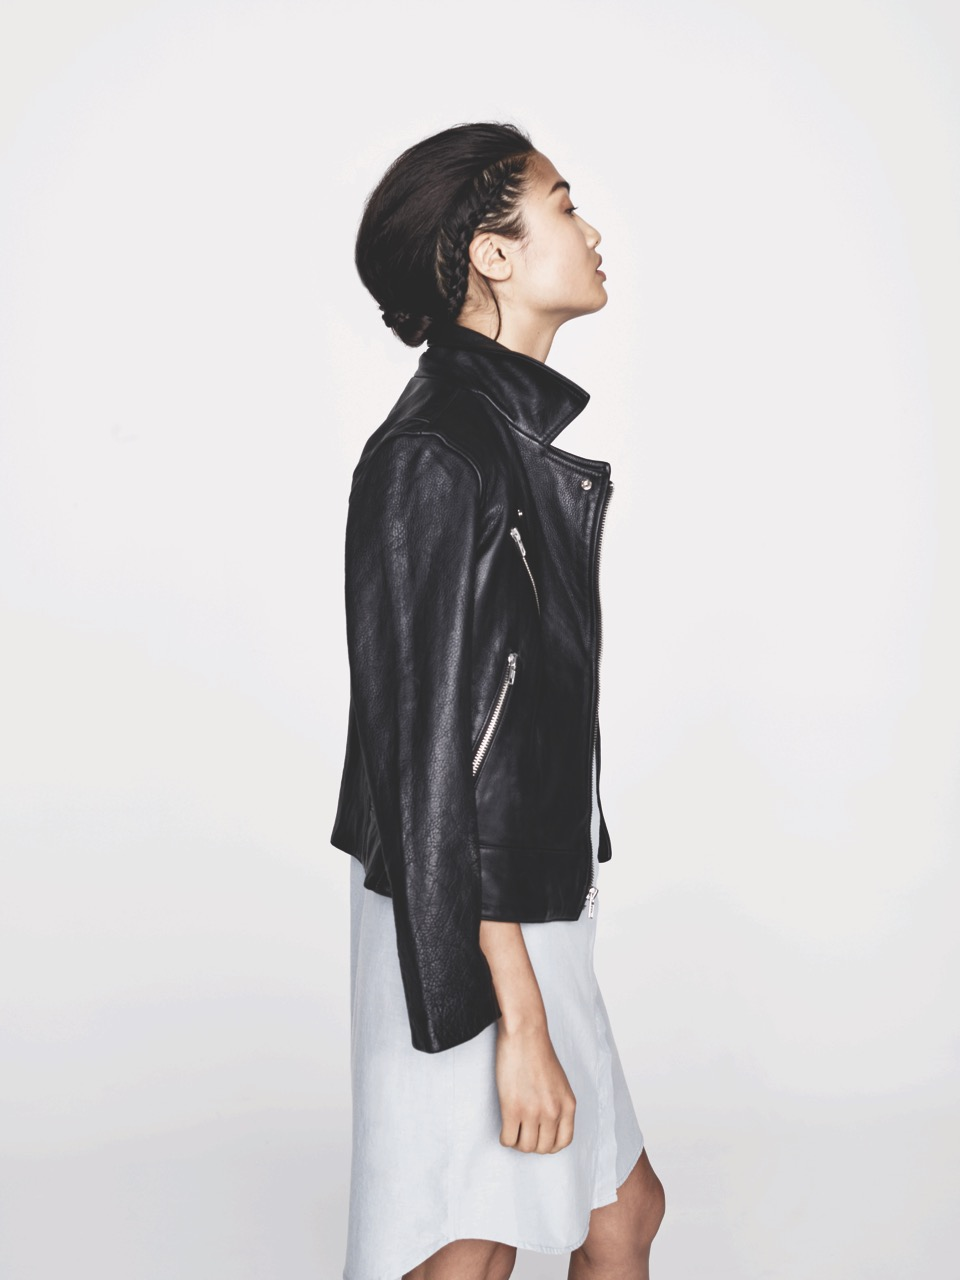 Levis_Made_and_Crafted_KeyLook-Womens-01_2.jpeg